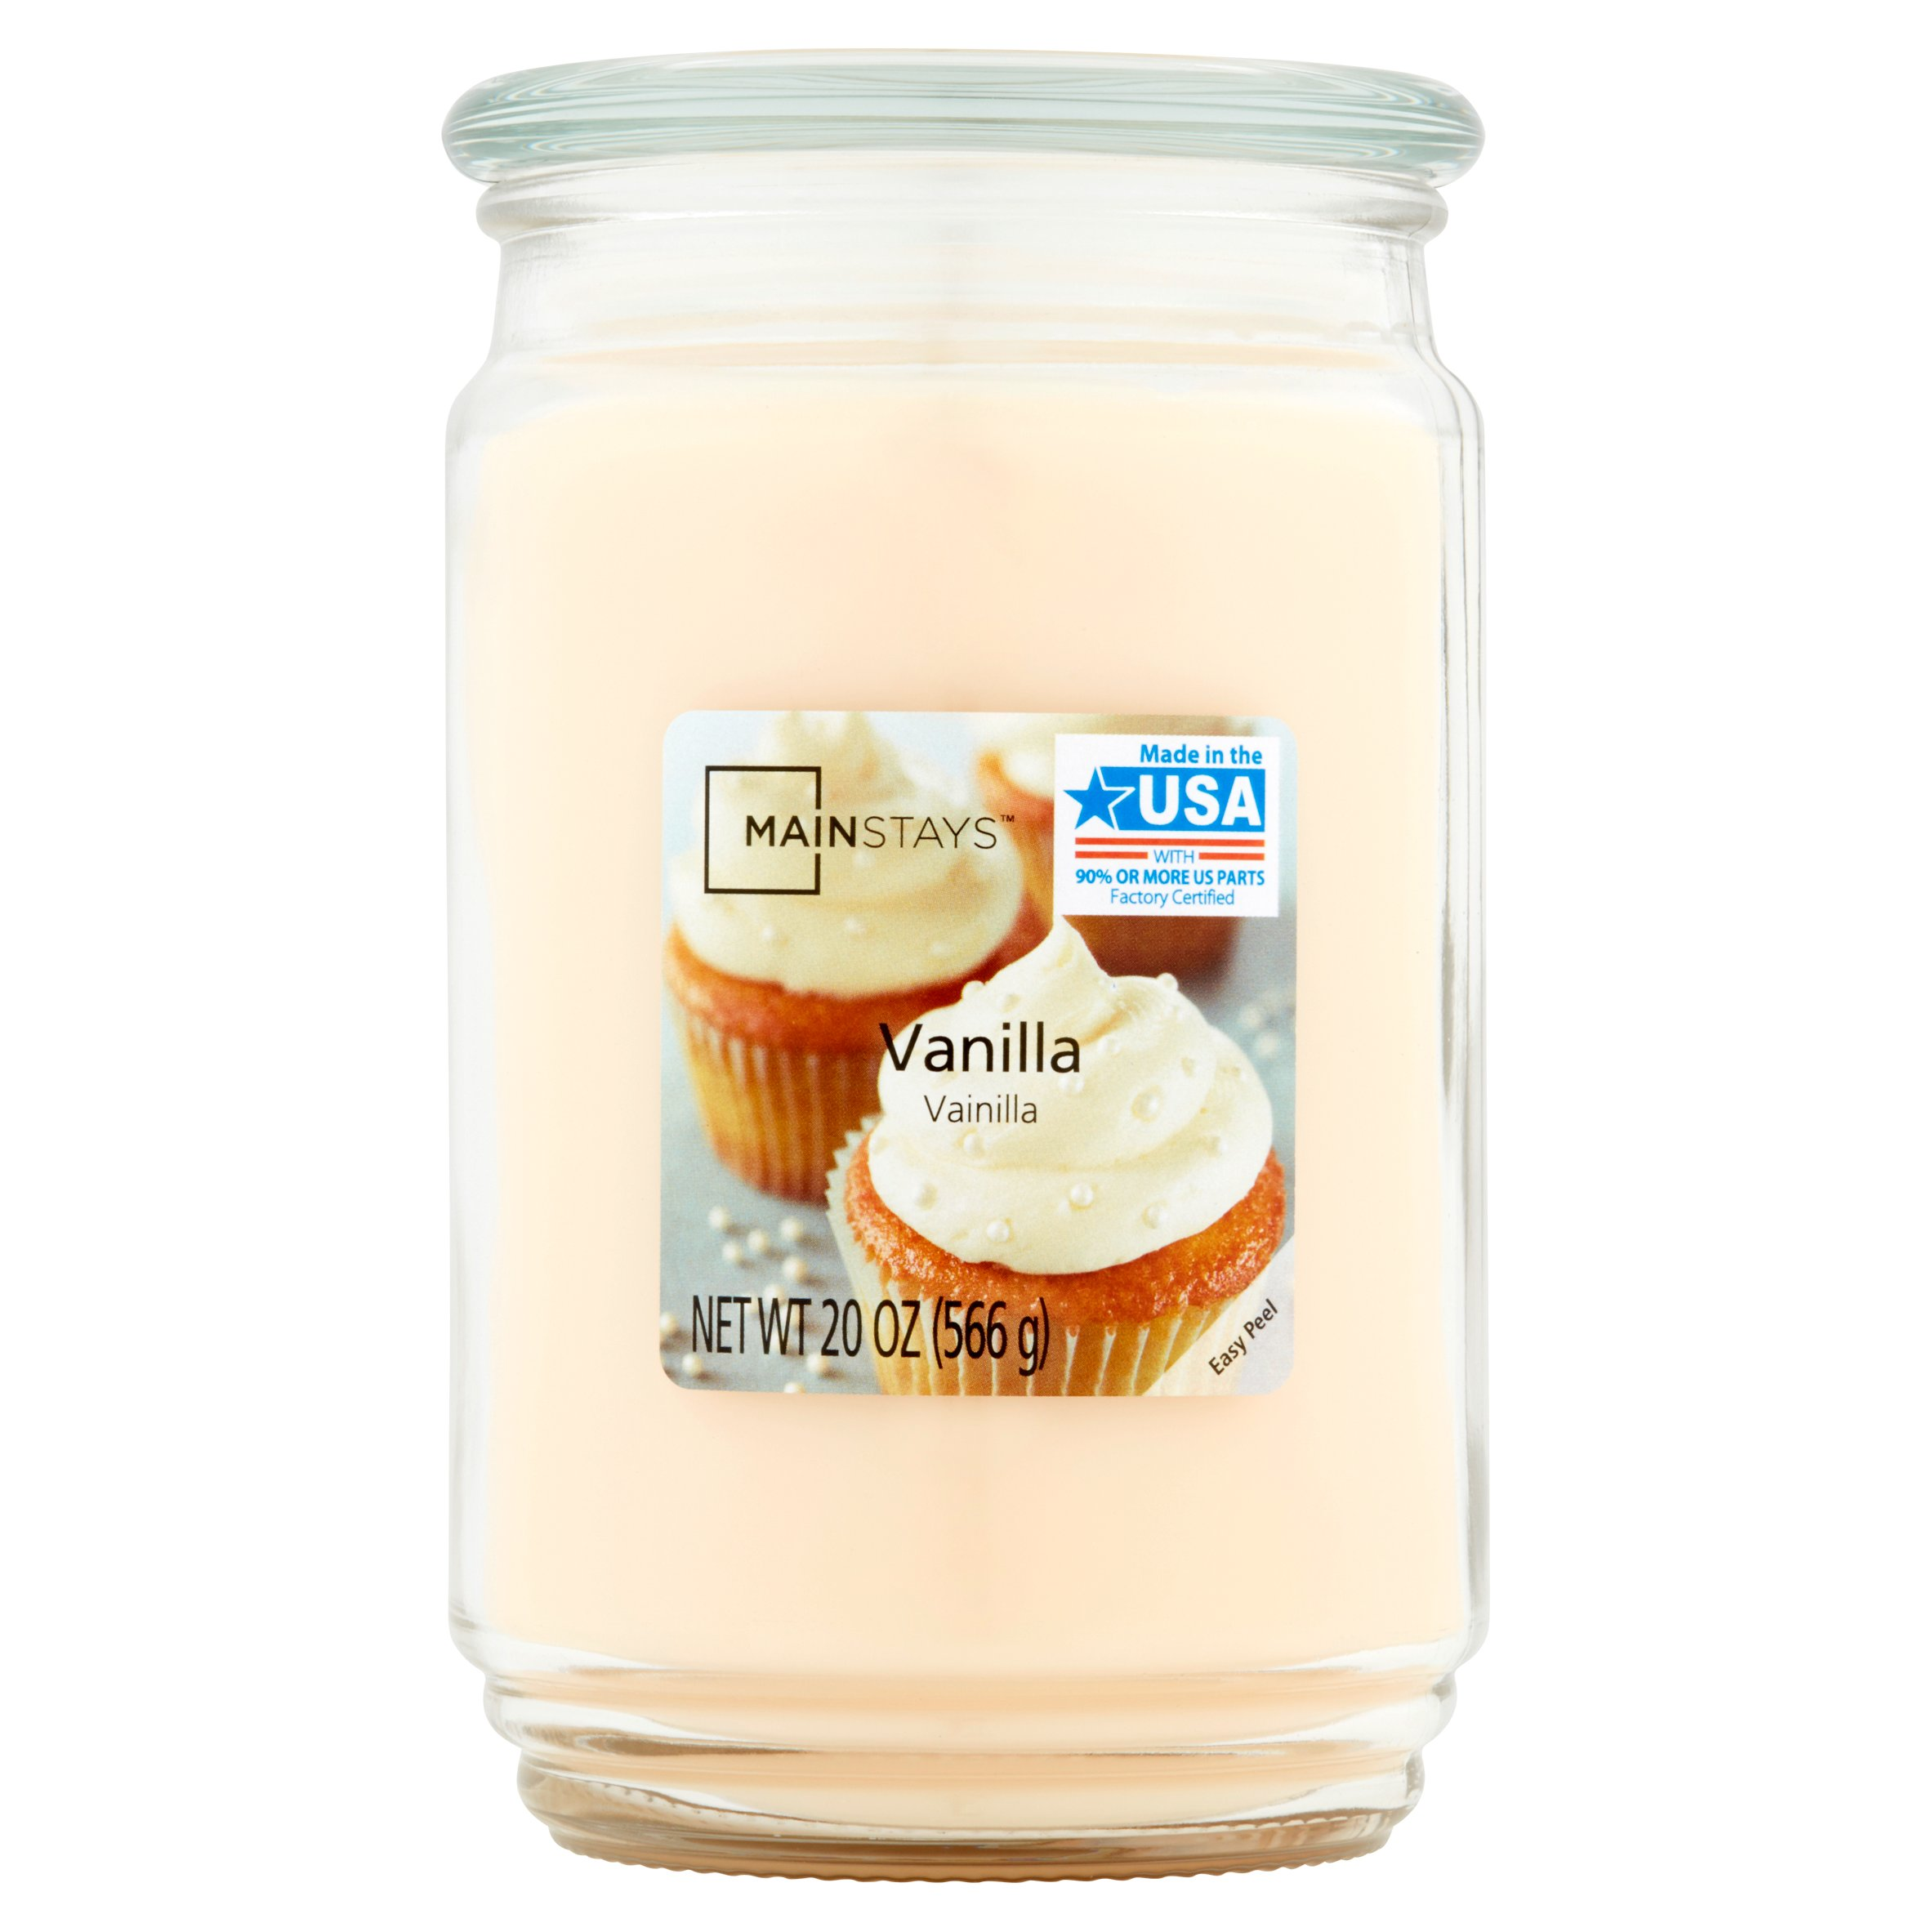 Mainstays 2-Pack Scented Candles, Vanilla, 20 oz by Wal-Mart Stores, Inc.